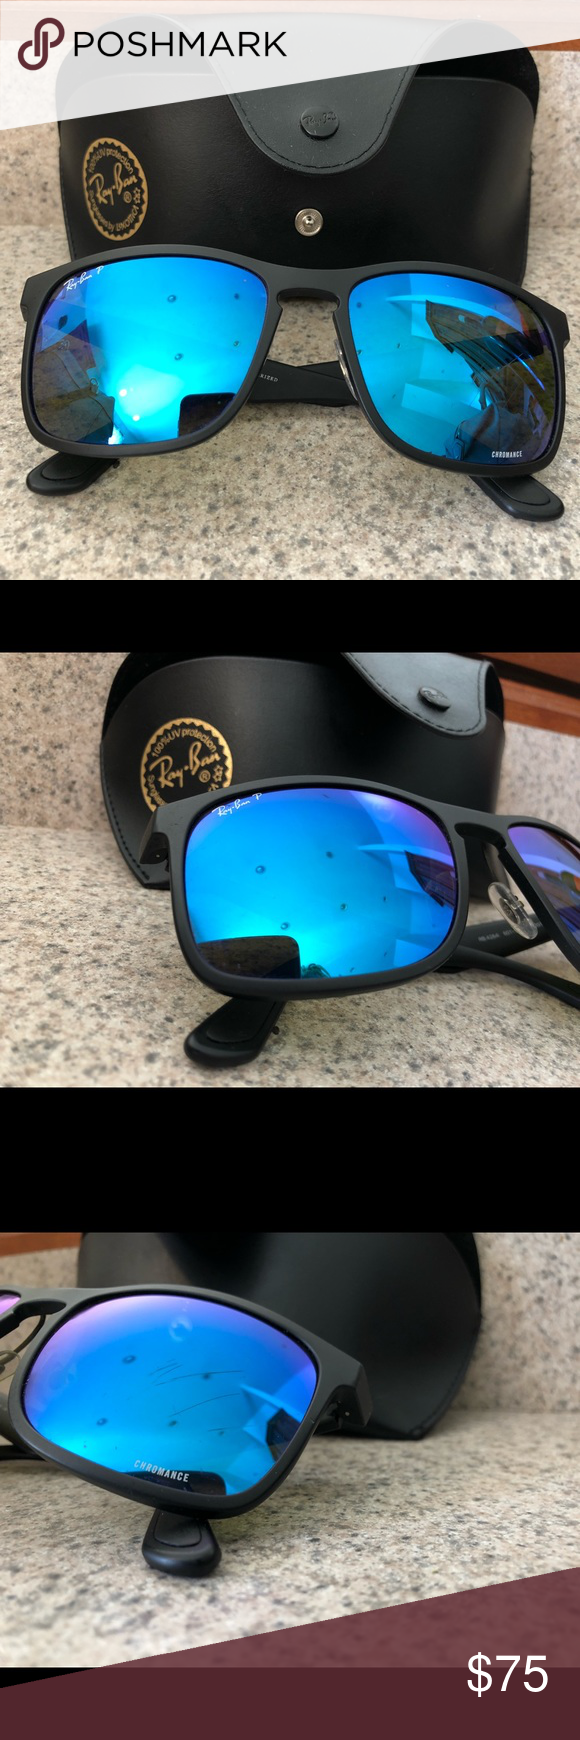 0214434cb003d3 Rayban polarized sunglasses - Chromance Lens These are Ray-Ban RB4264  Chromance Square Lens sunglasses. They have been worn a few times.